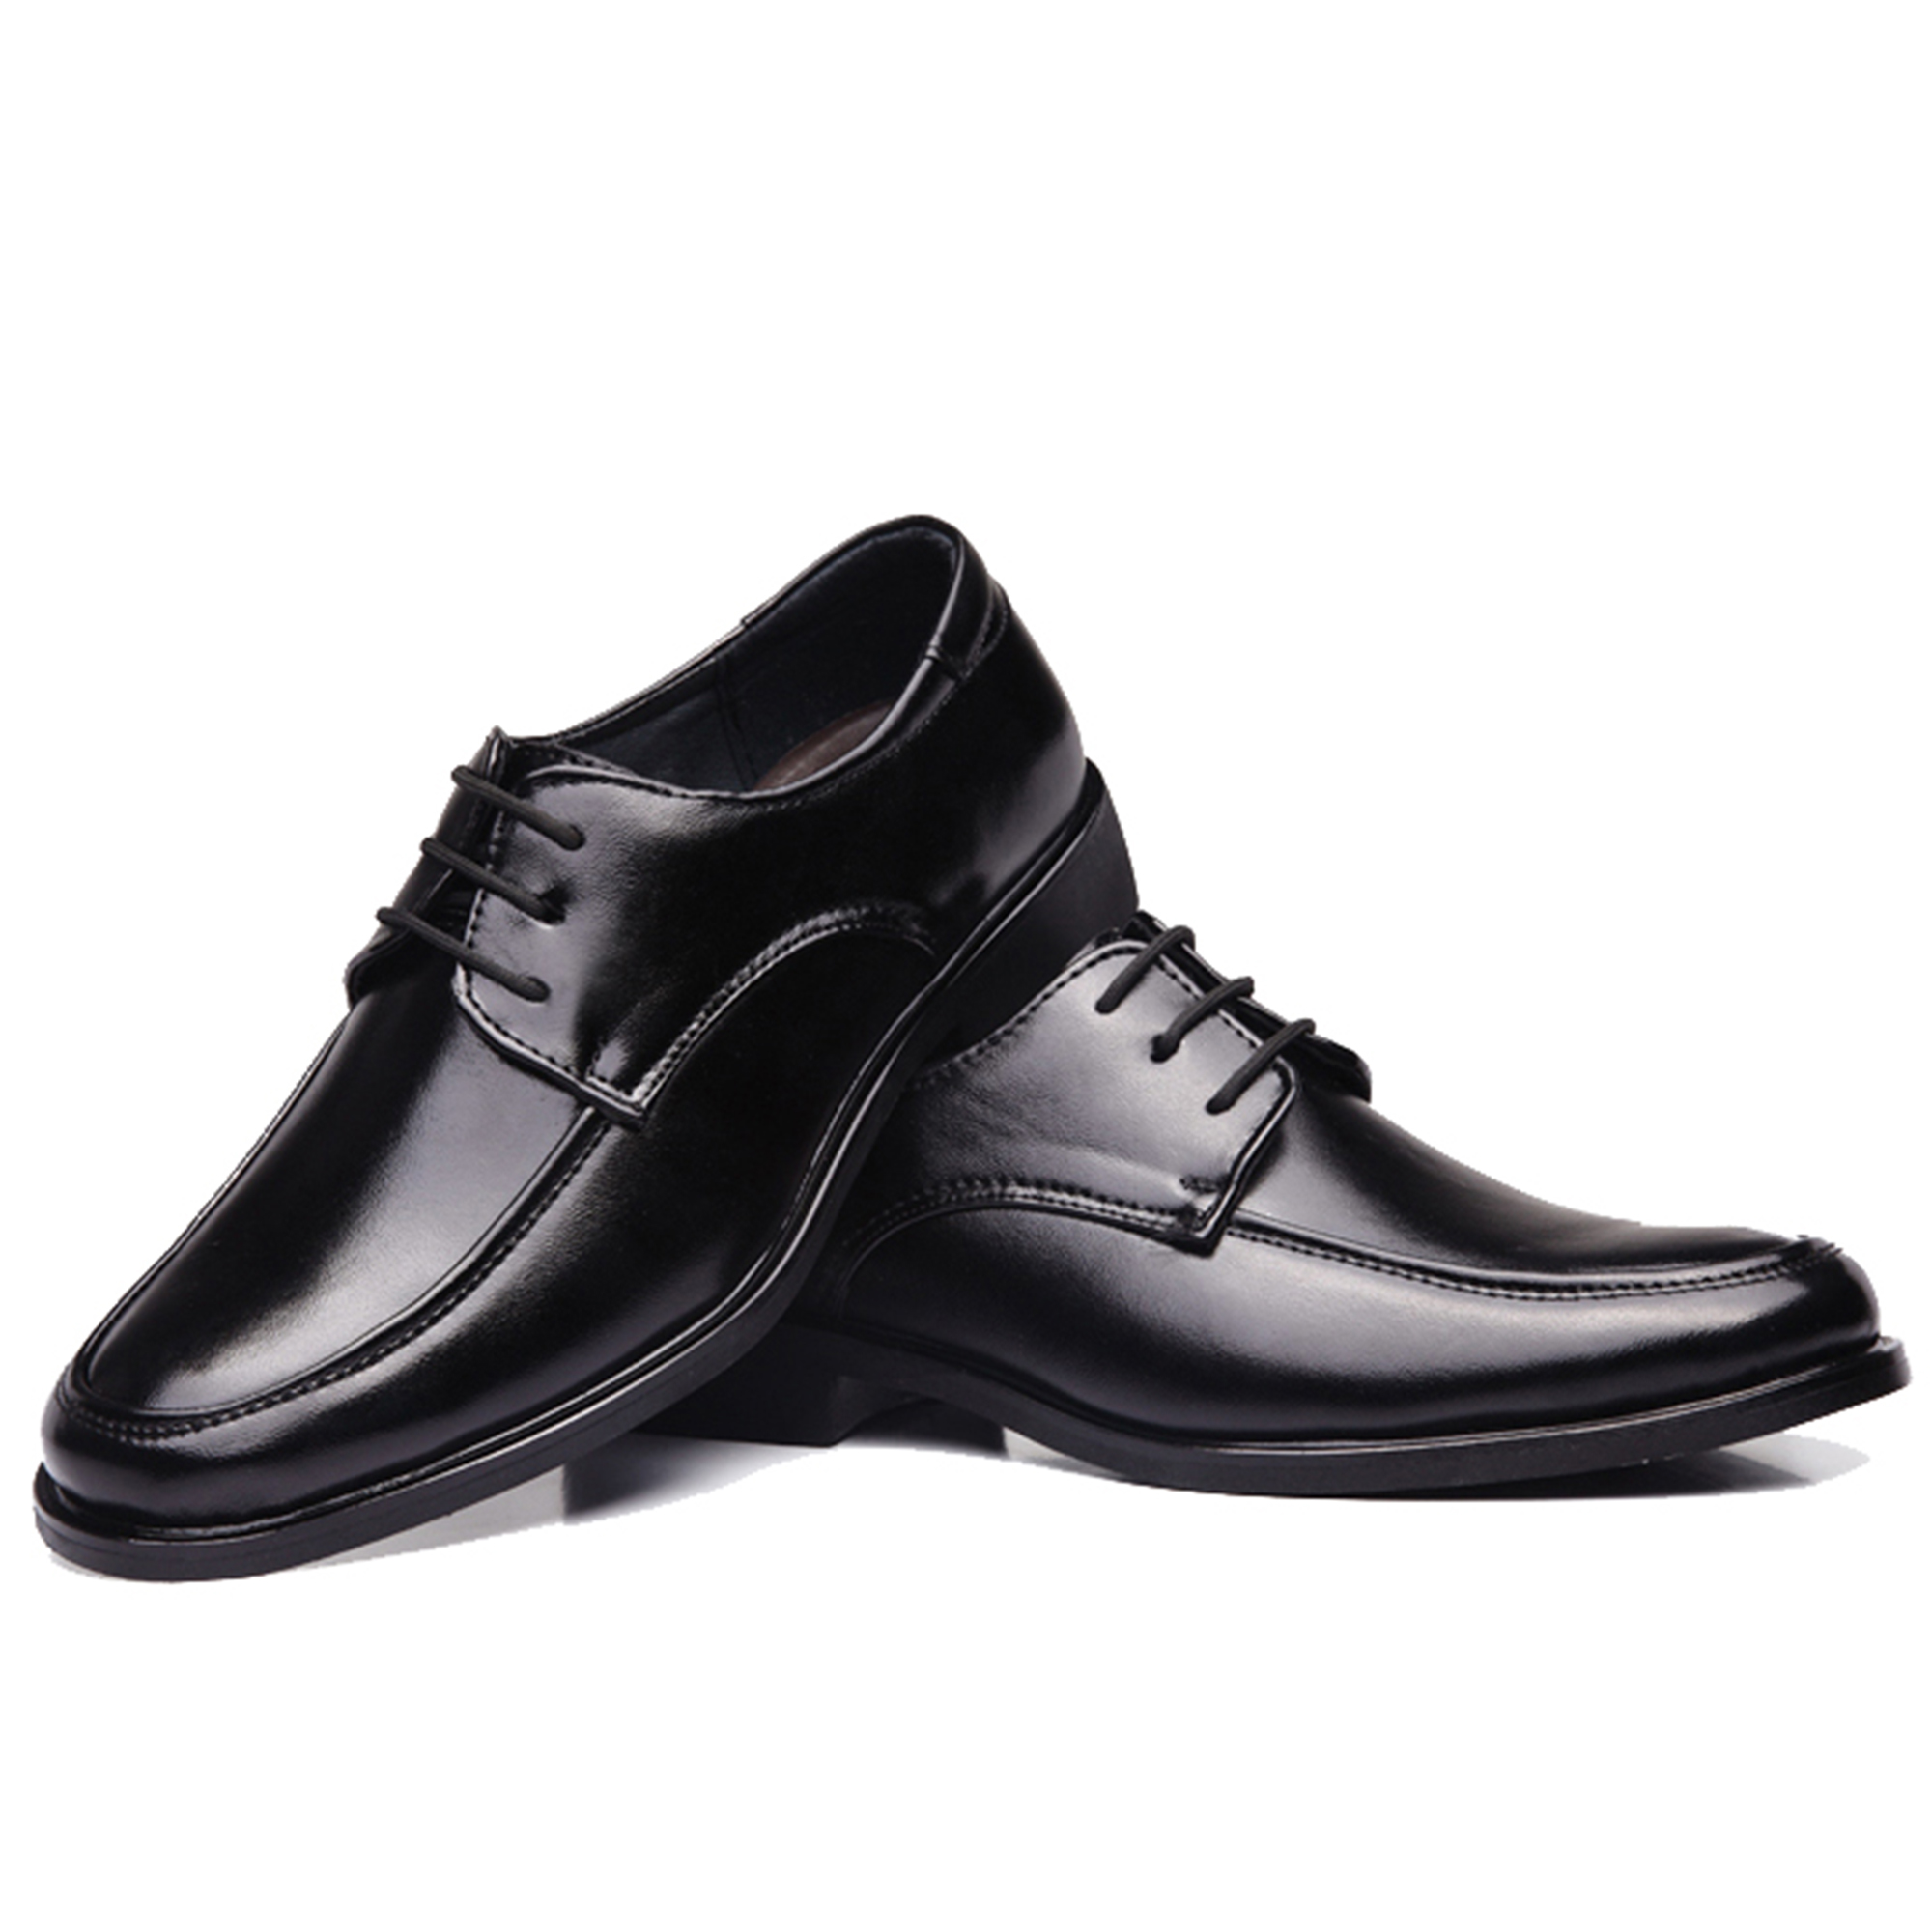 BA Collections Men's Classic Dress Fashion Leather European Style Oxford Shoes